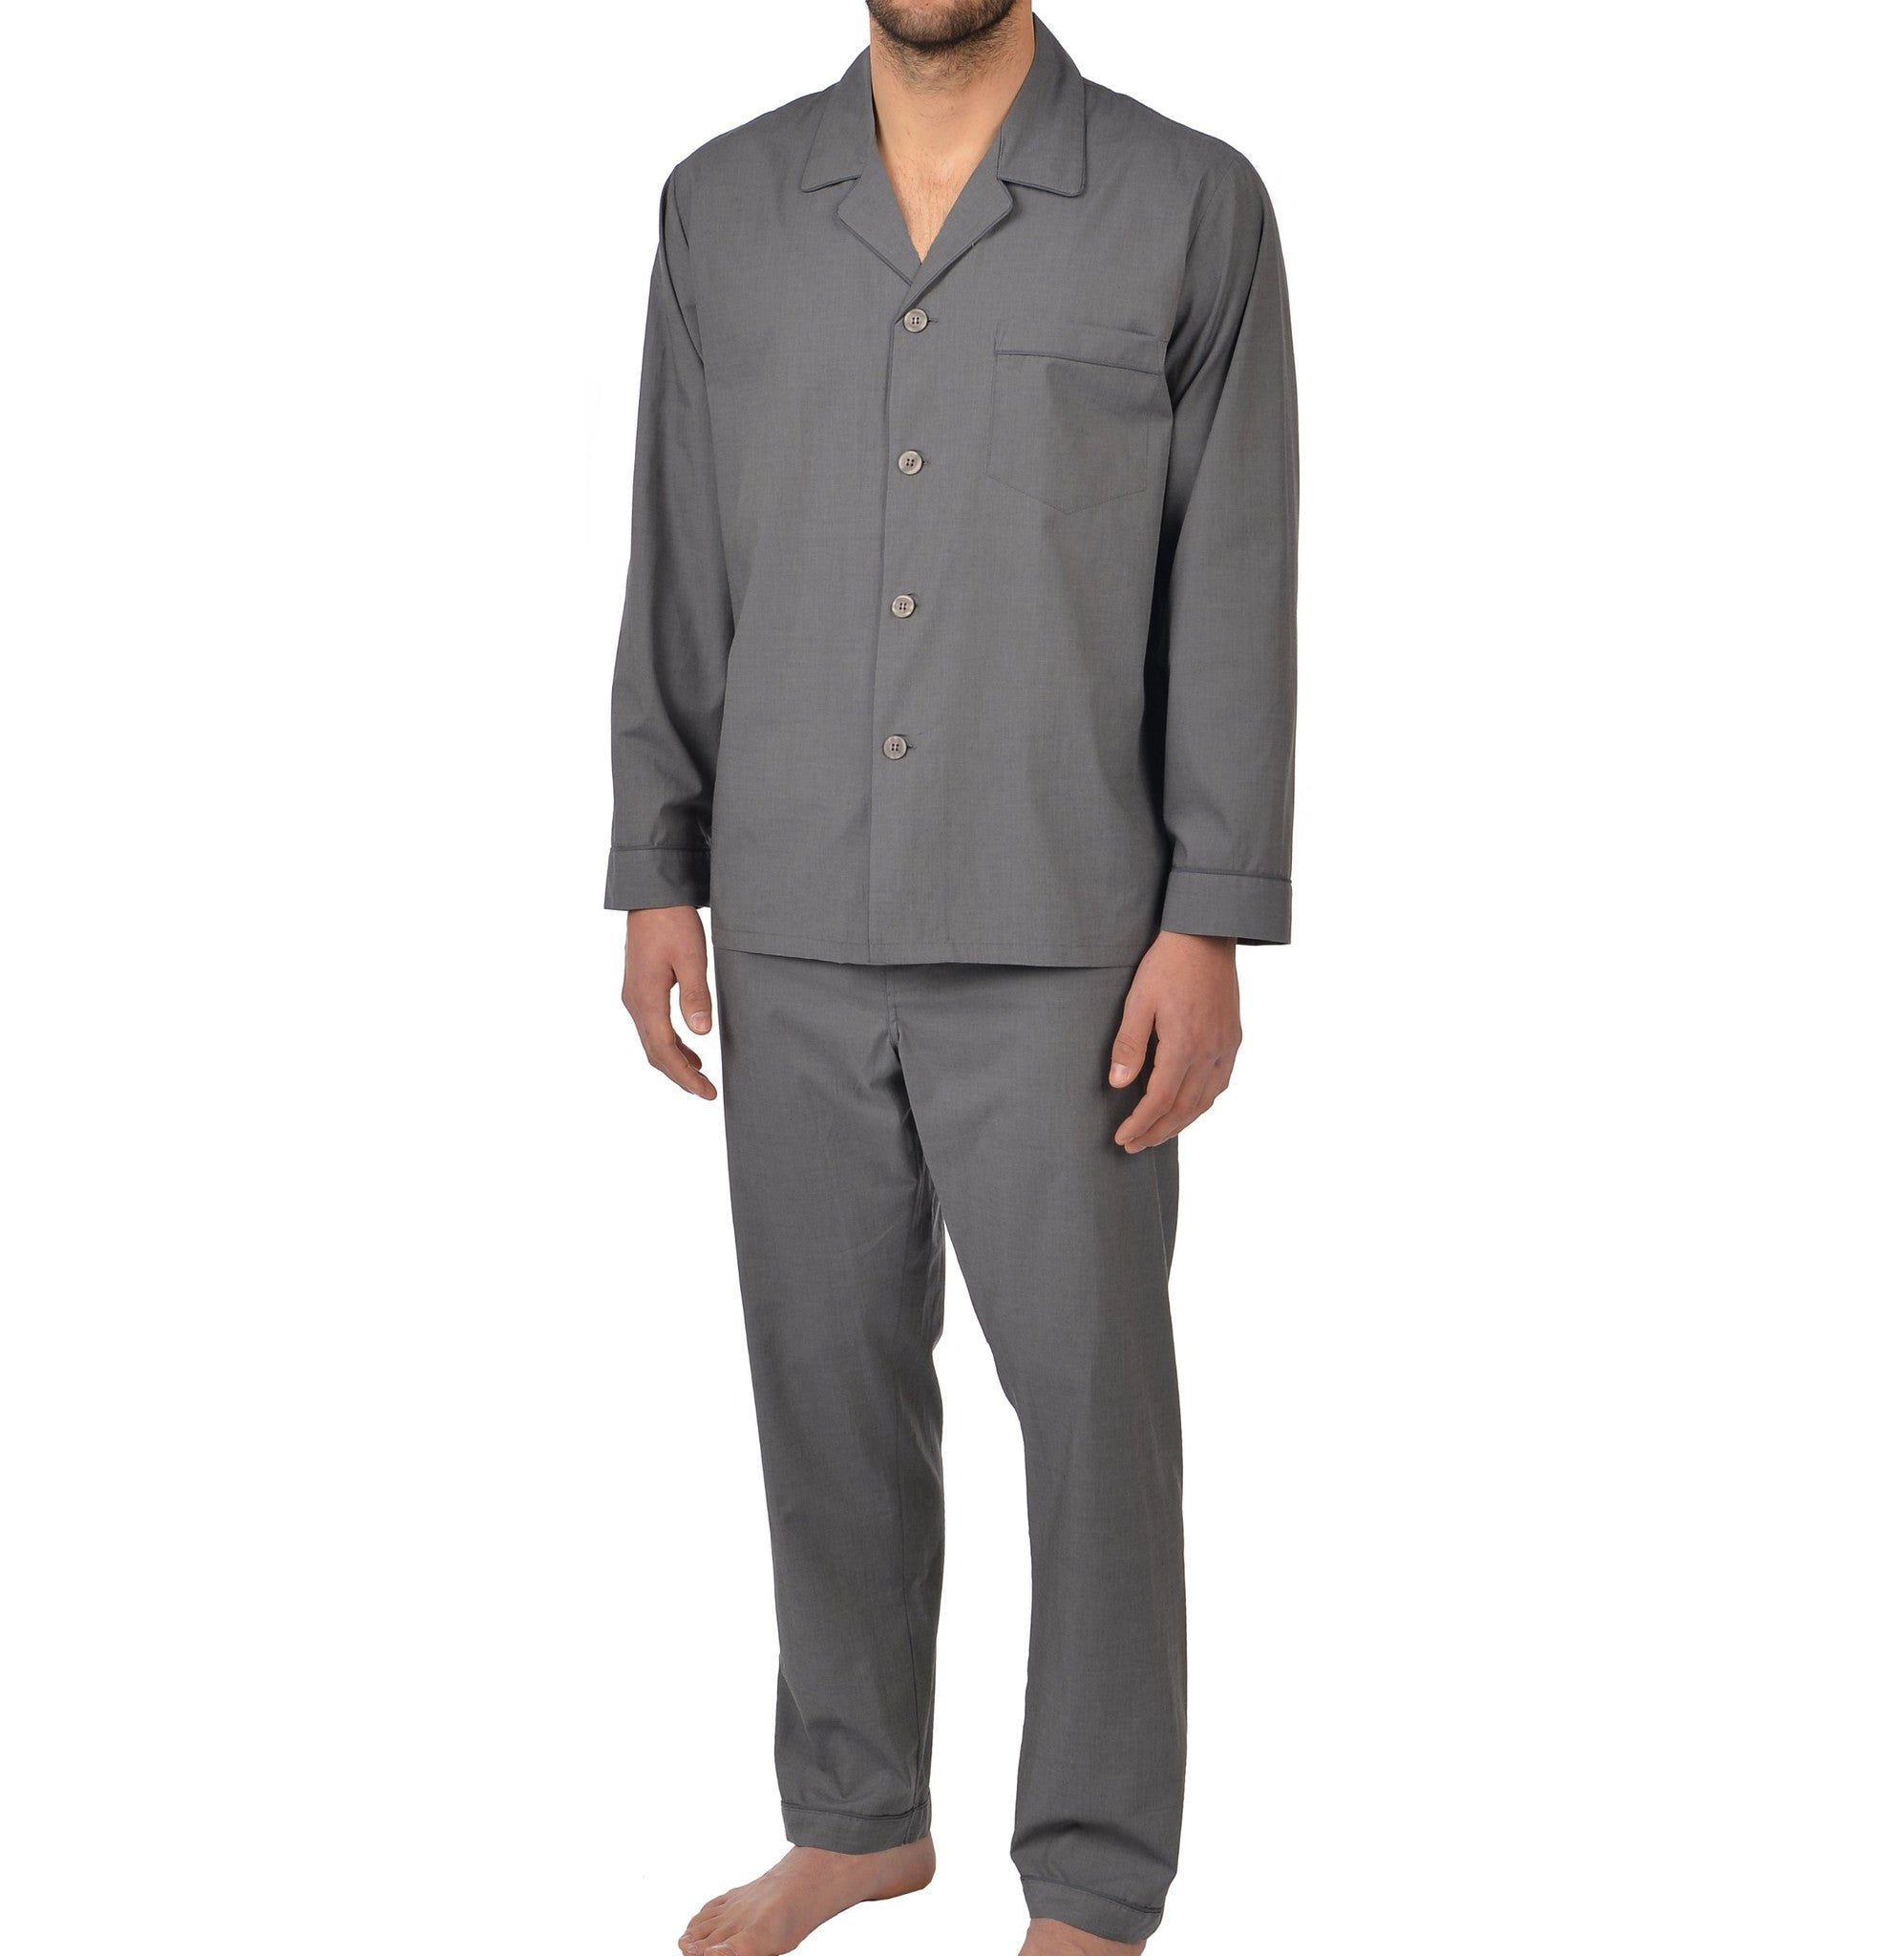 Cotton Long Sleeve Pajama in Charcoal